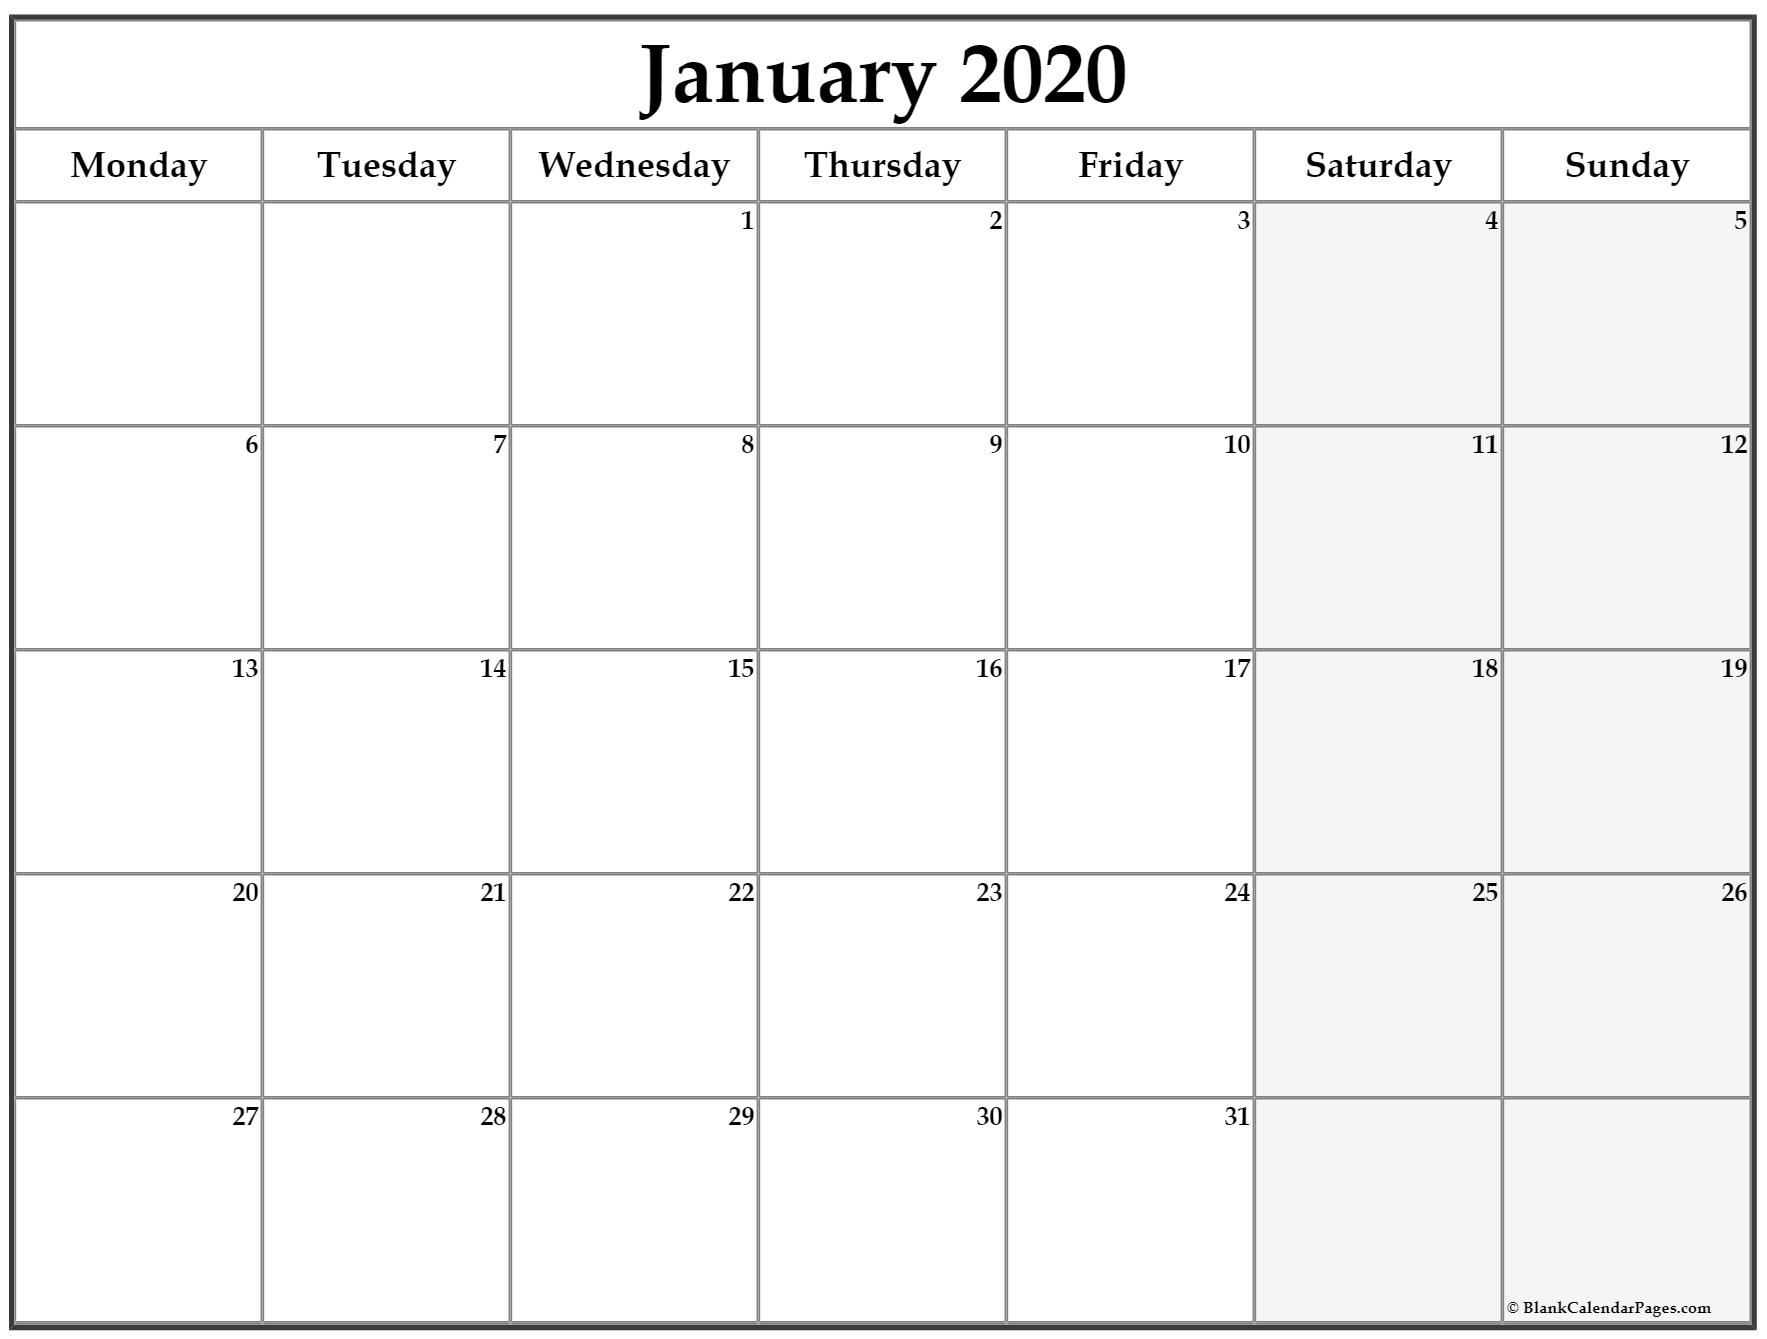 January 2020 Monday Calendar | Monday To Sunday throughout Monday Through Friday Calendar